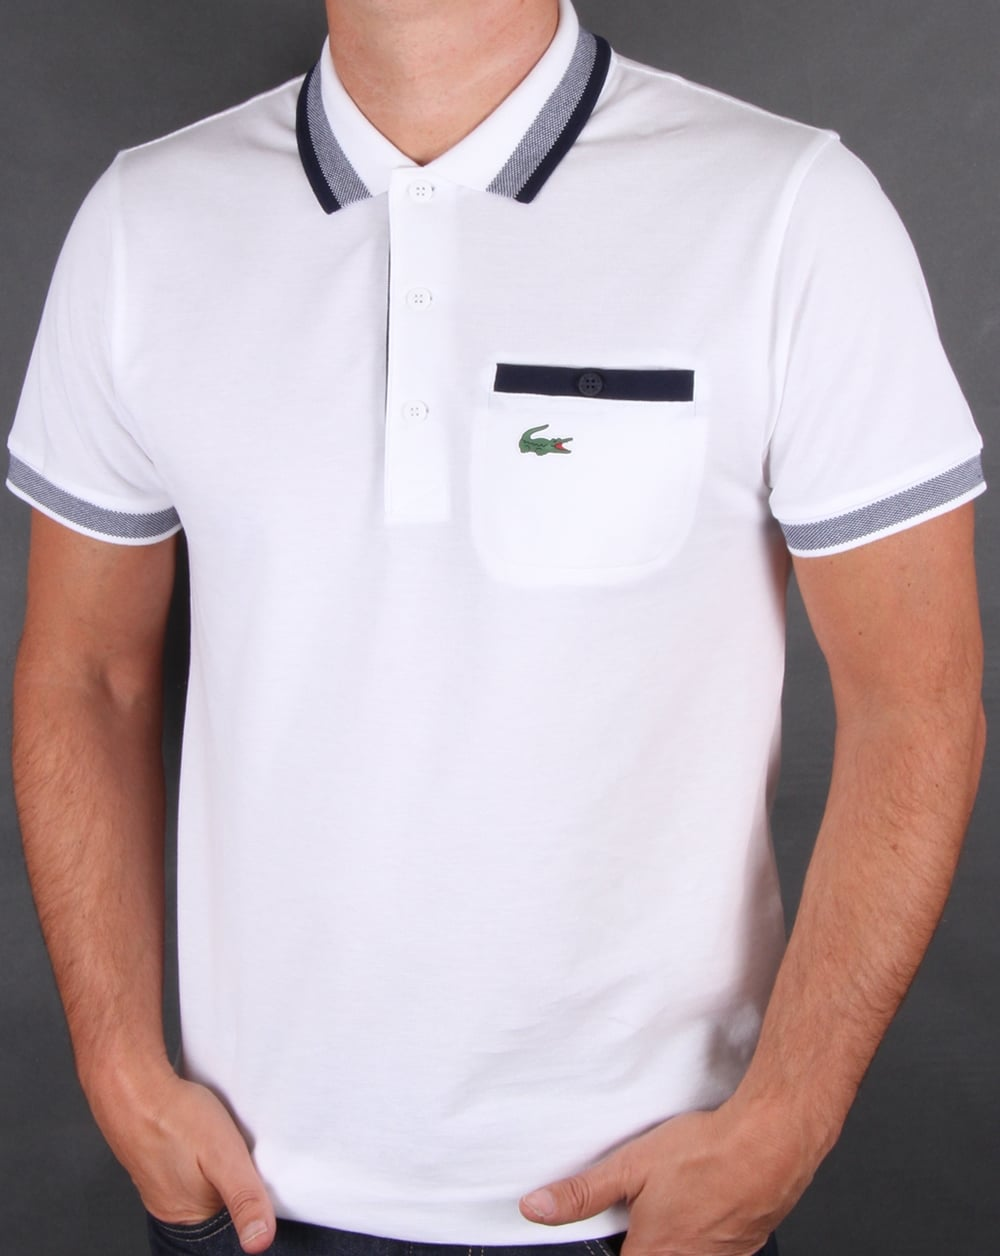 lacoste pocket polo shirt white navy 80s casual classics. Black Bedroom Furniture Sets. Home Design Ideas